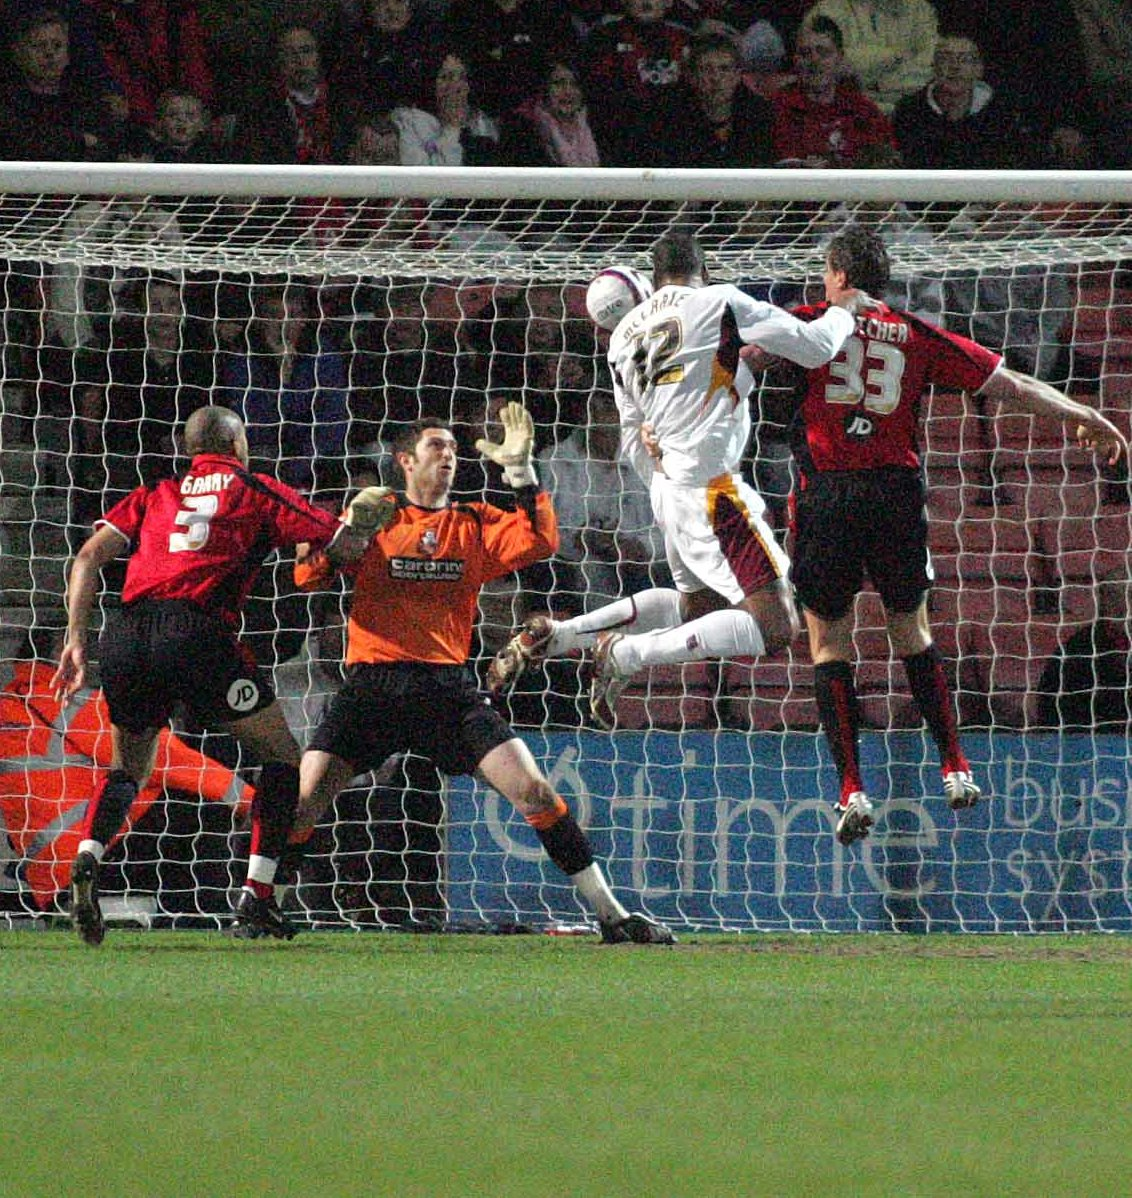 Defender Matt Clarke scores his first goal for City to draw them level at 1-1 during tonight's clash at Dean Court